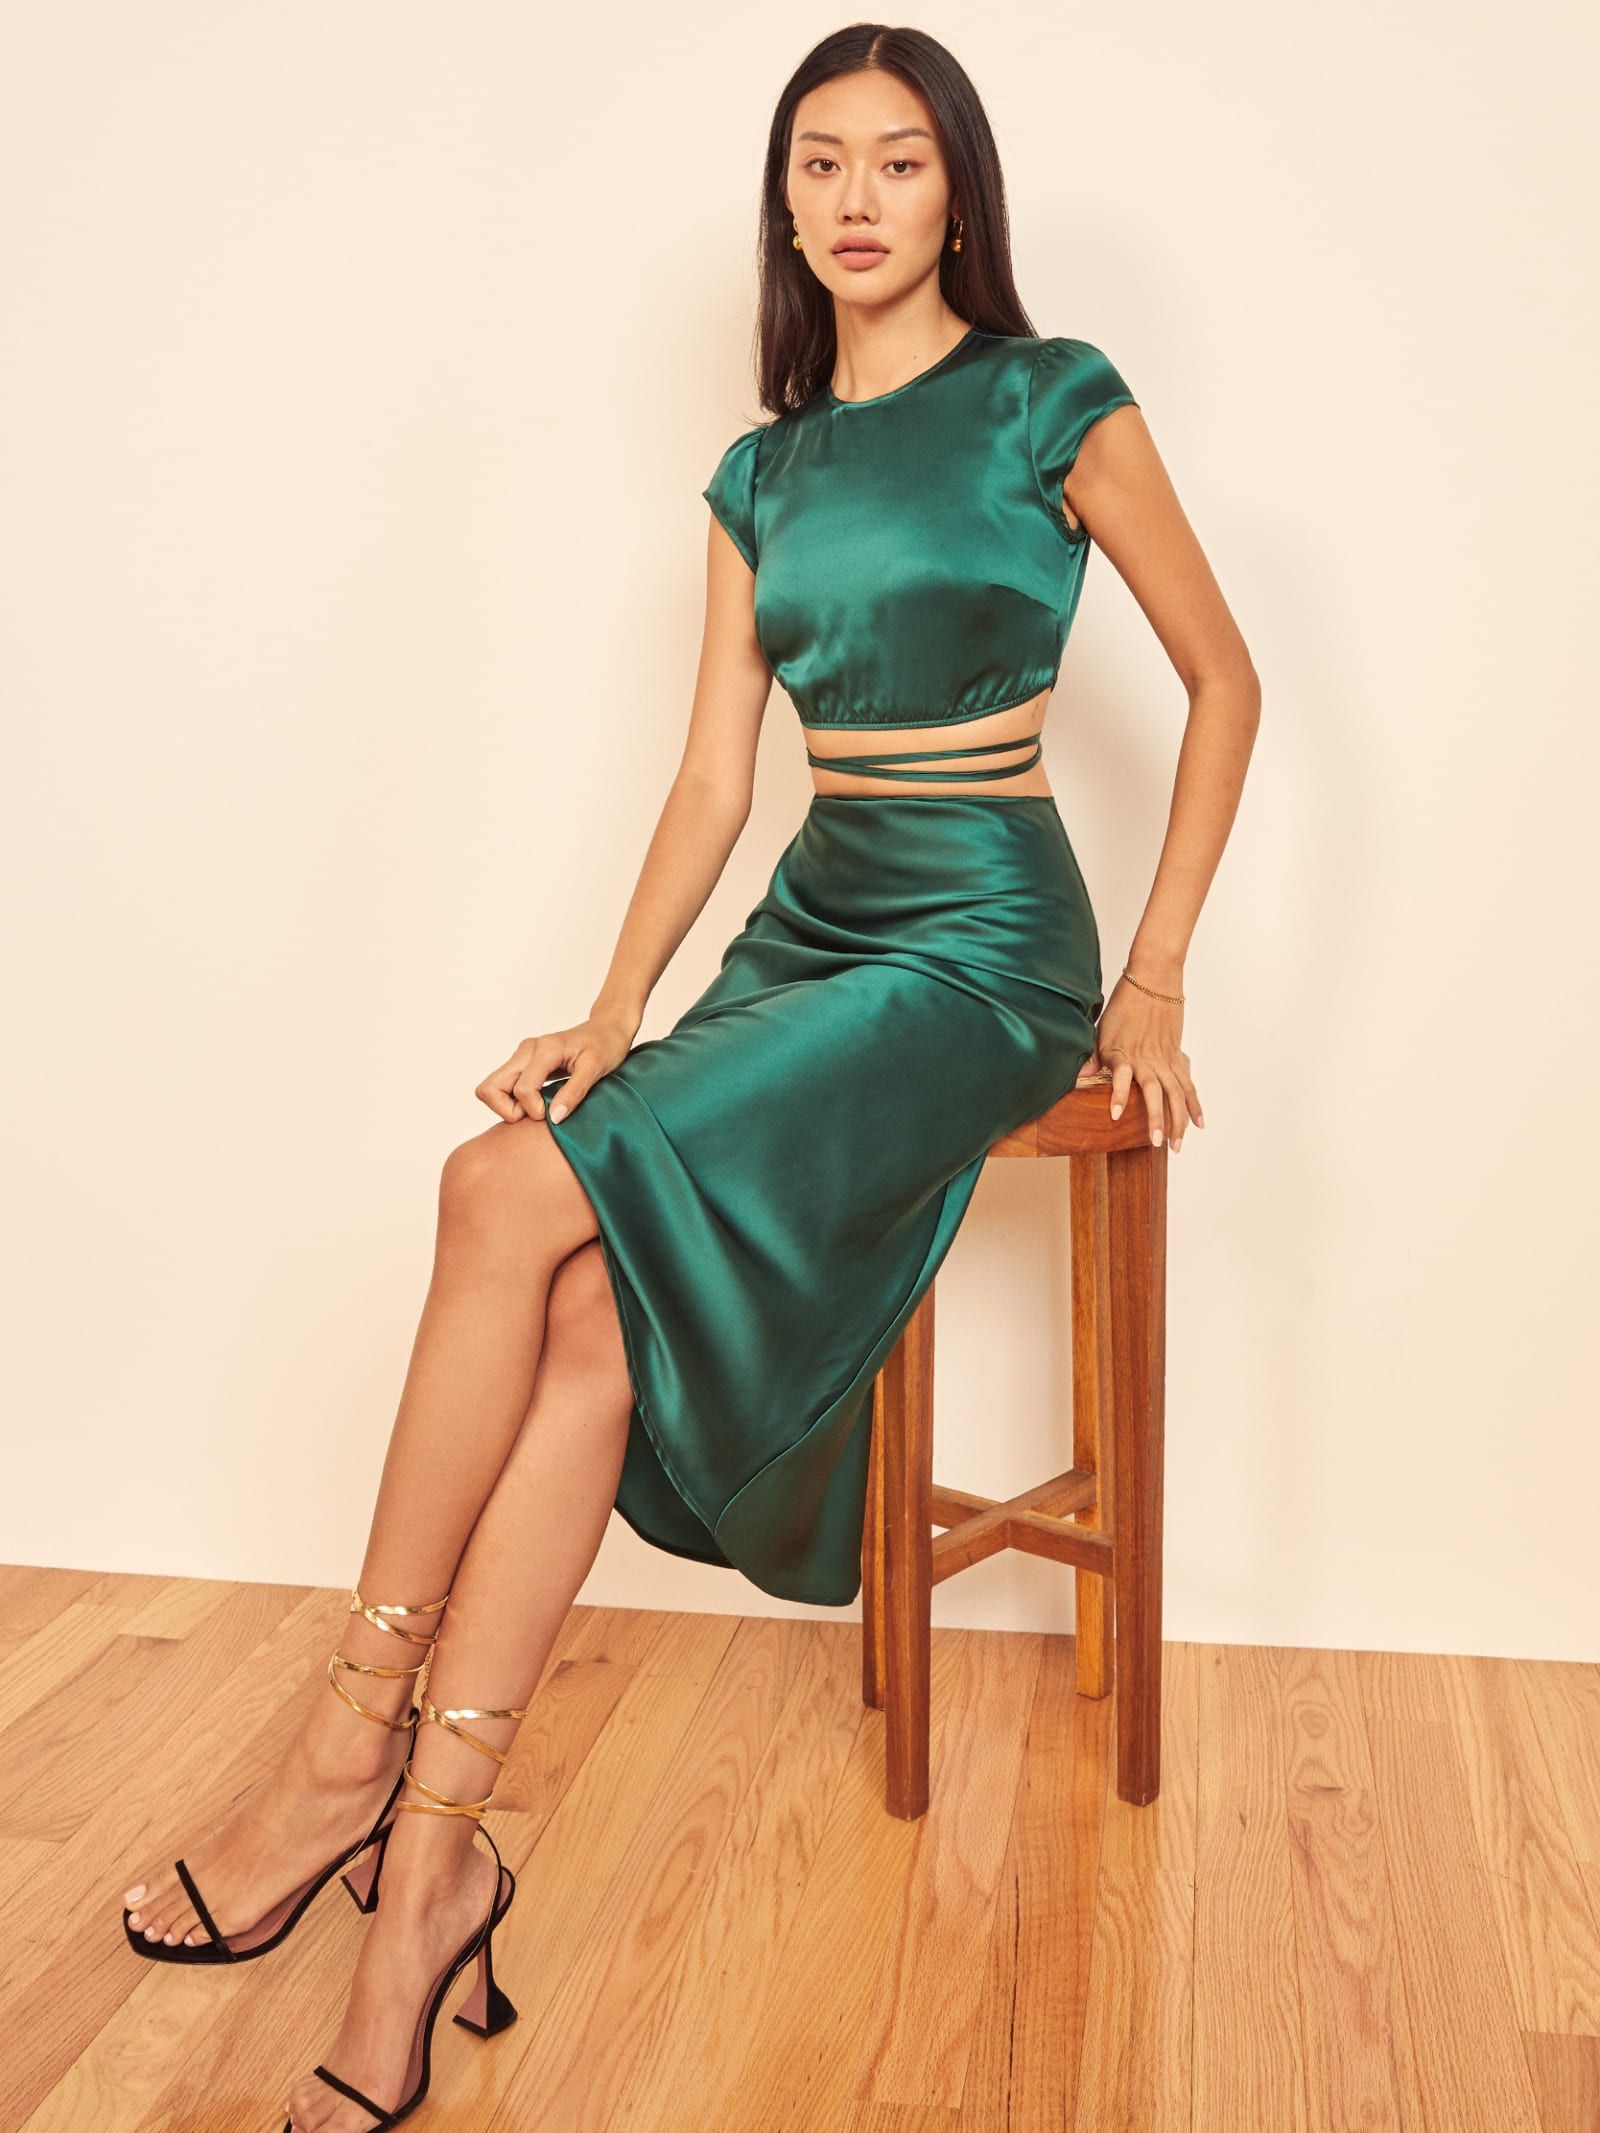 Henri Two Piece Silk Two Piece Outfit Skirt Silk Outfit Two Piece Outfits Skirt [ 2133 x 1600 Pixel ]